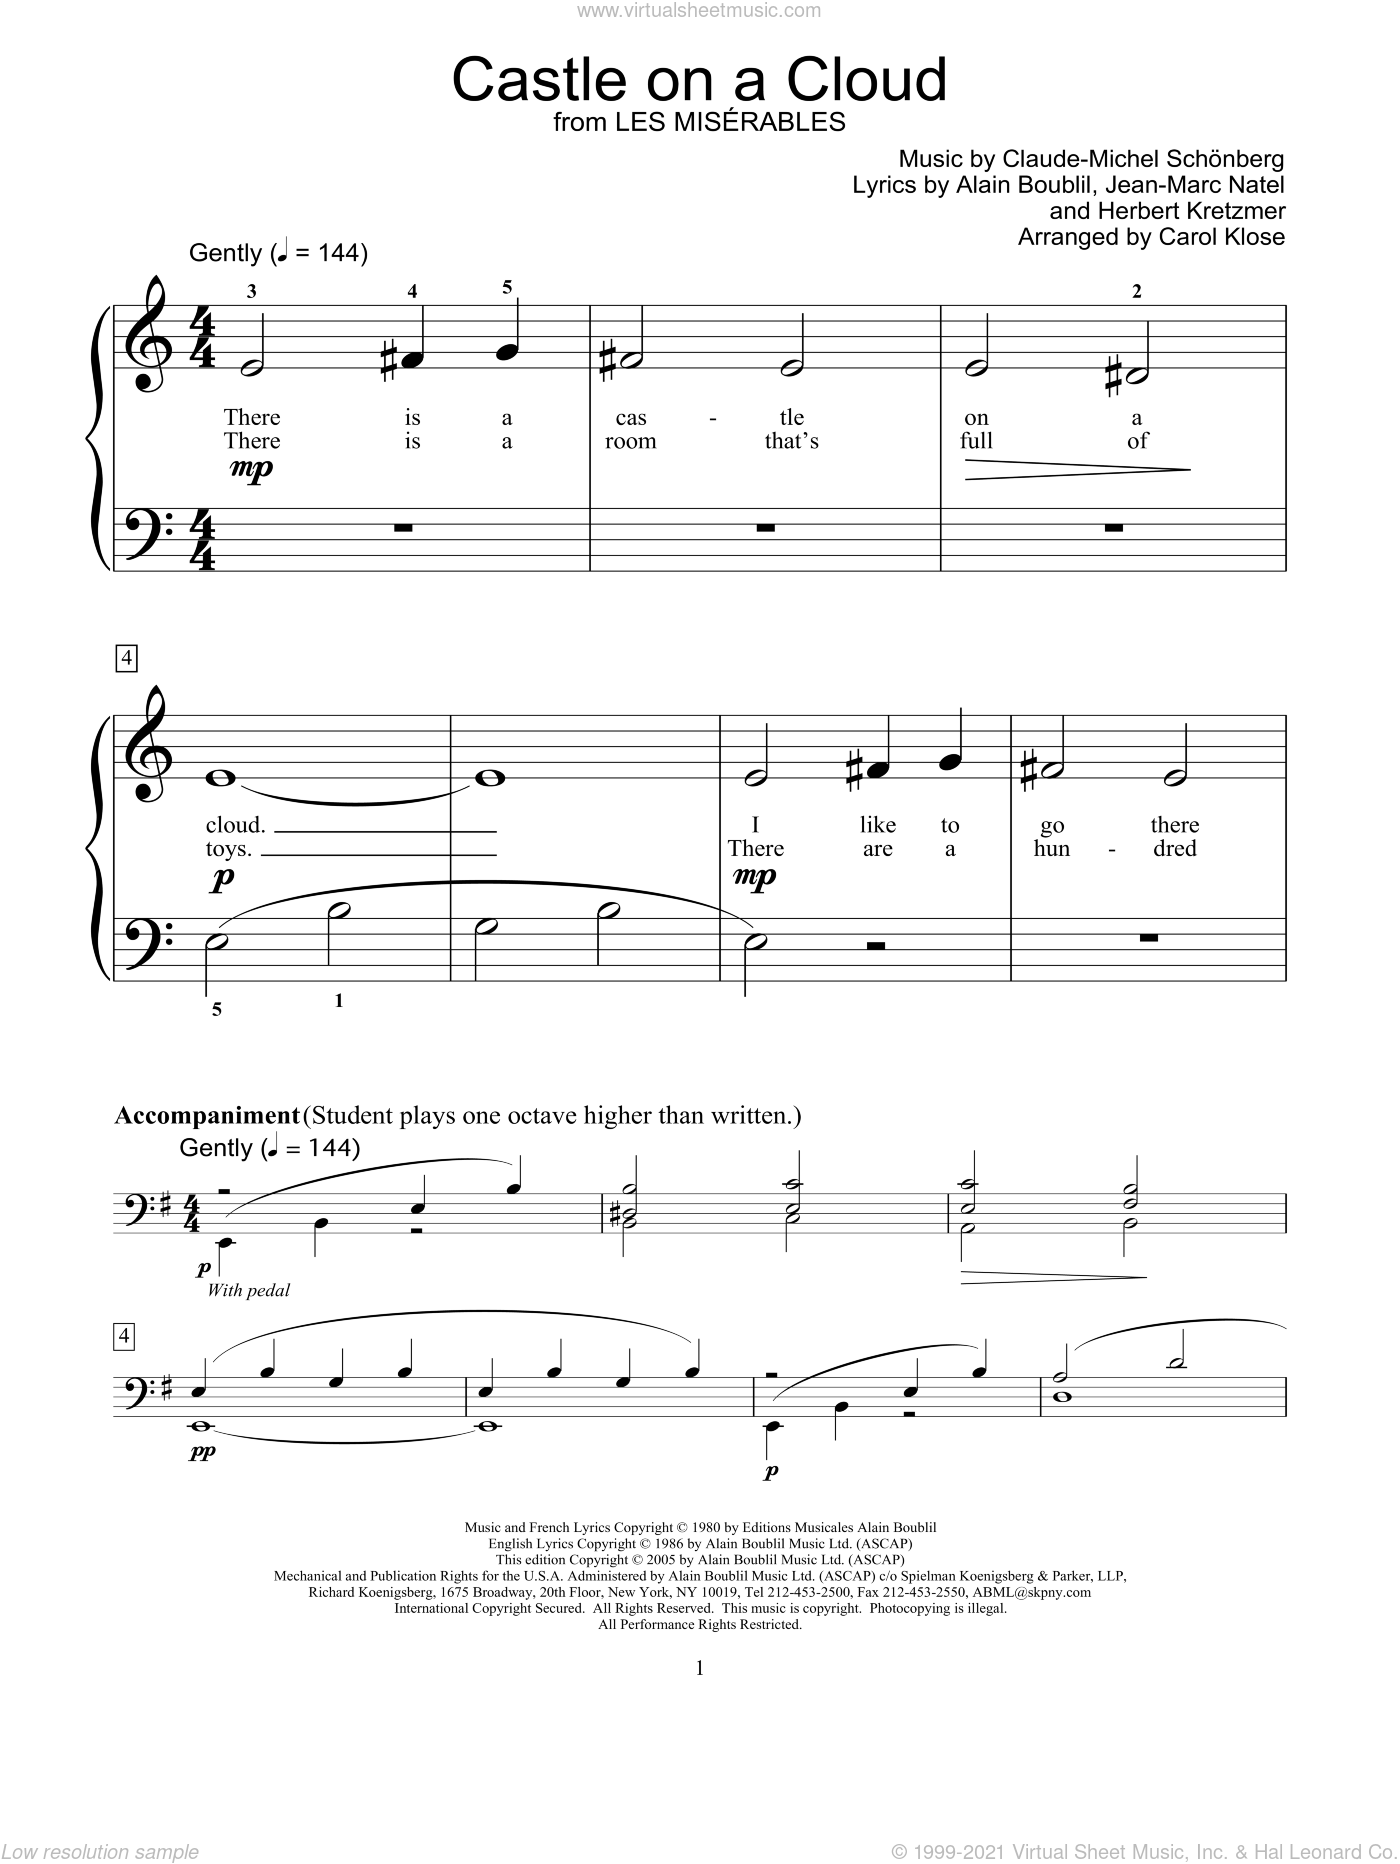 Castle On A Cloud sheet music for piano solo (elementary) by Alain Boublil, Carol Klose, Les Miserables (Musical), Miscellaneous, Claude-Michel Schonberg, Herbert Kretzmer and Jean-Marc Natel, beginner piano (elementary)